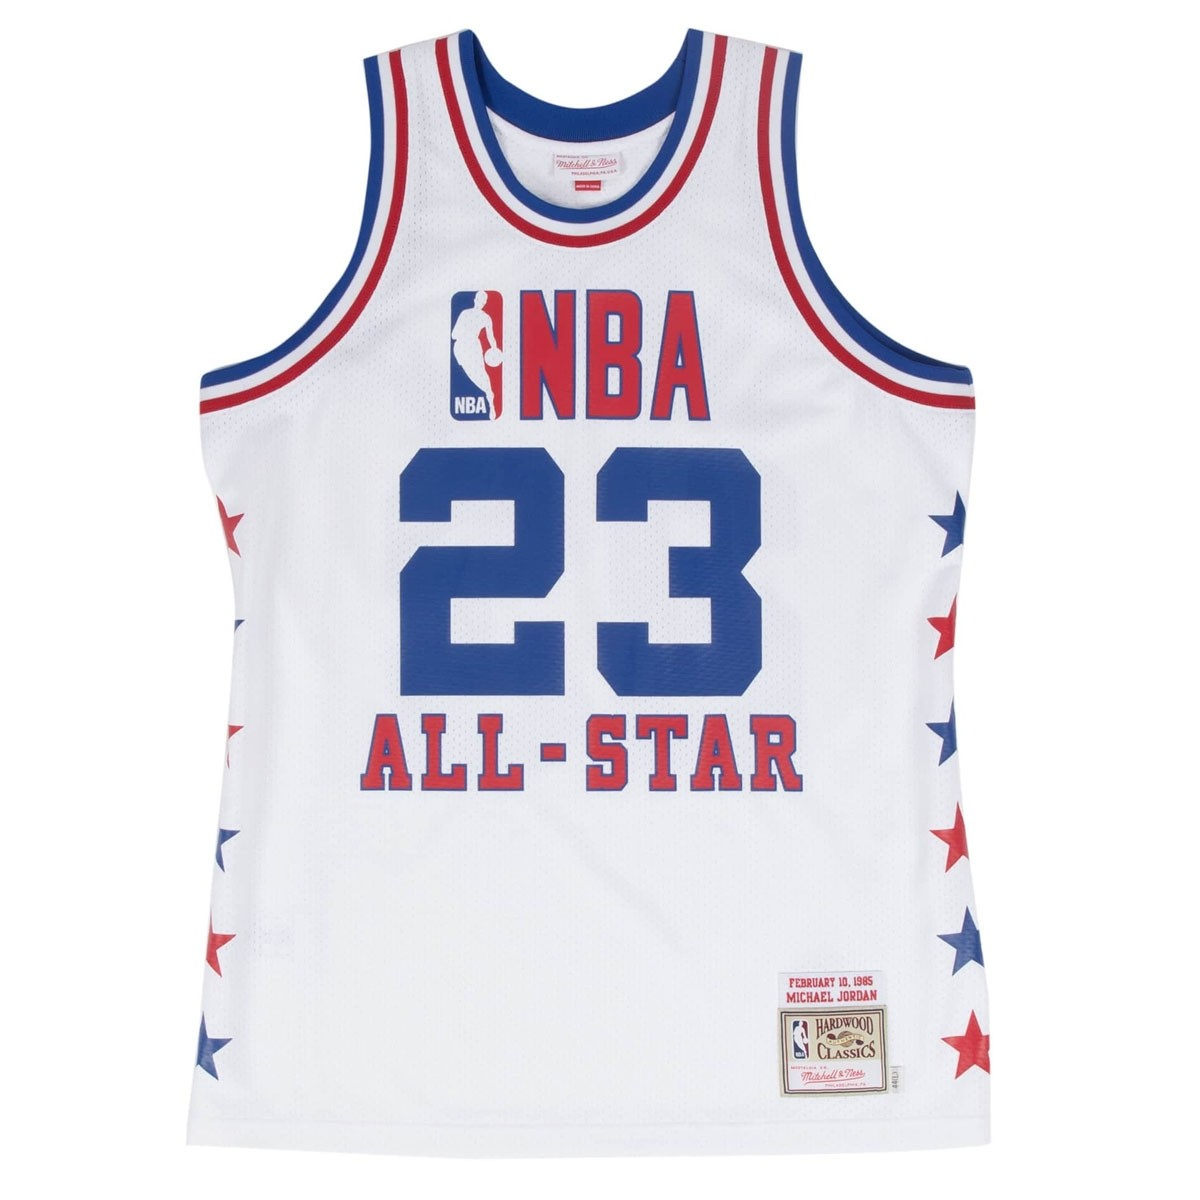 Mitchell & Ness Jordan Authentic Jersey 'All-Star 85'